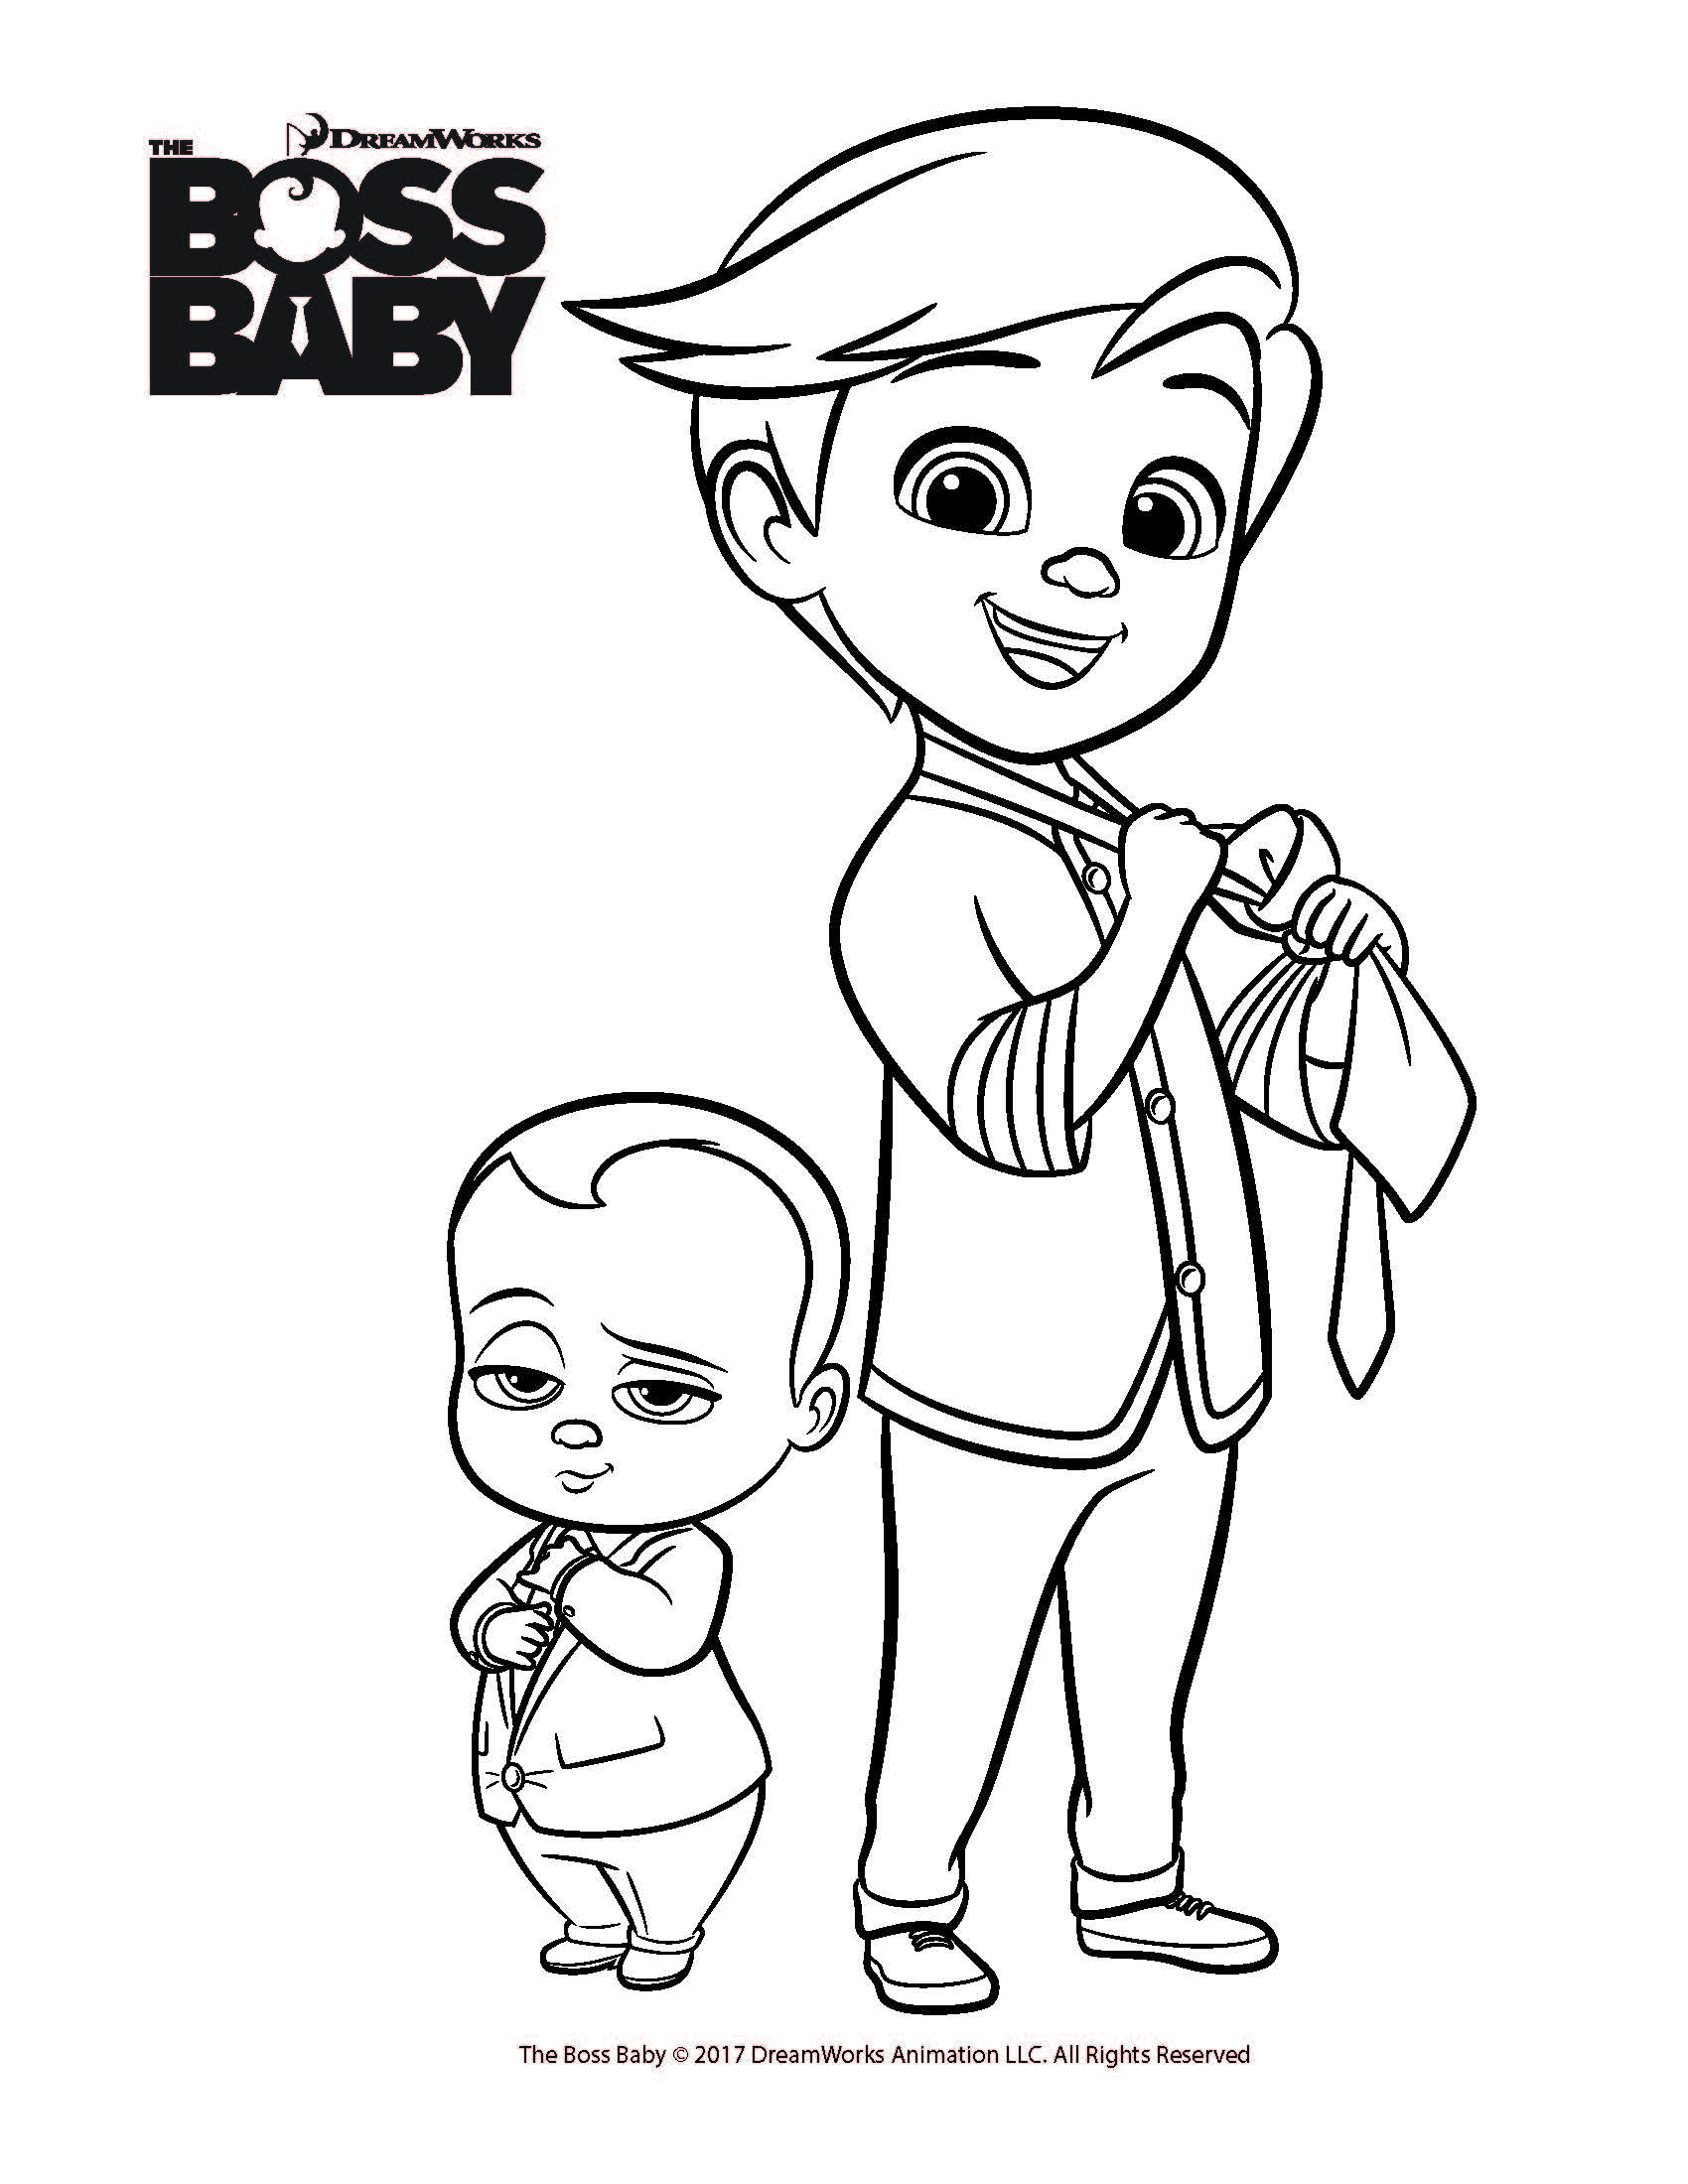 Free Coloring Printables For The Boss Baby From Dreamworks